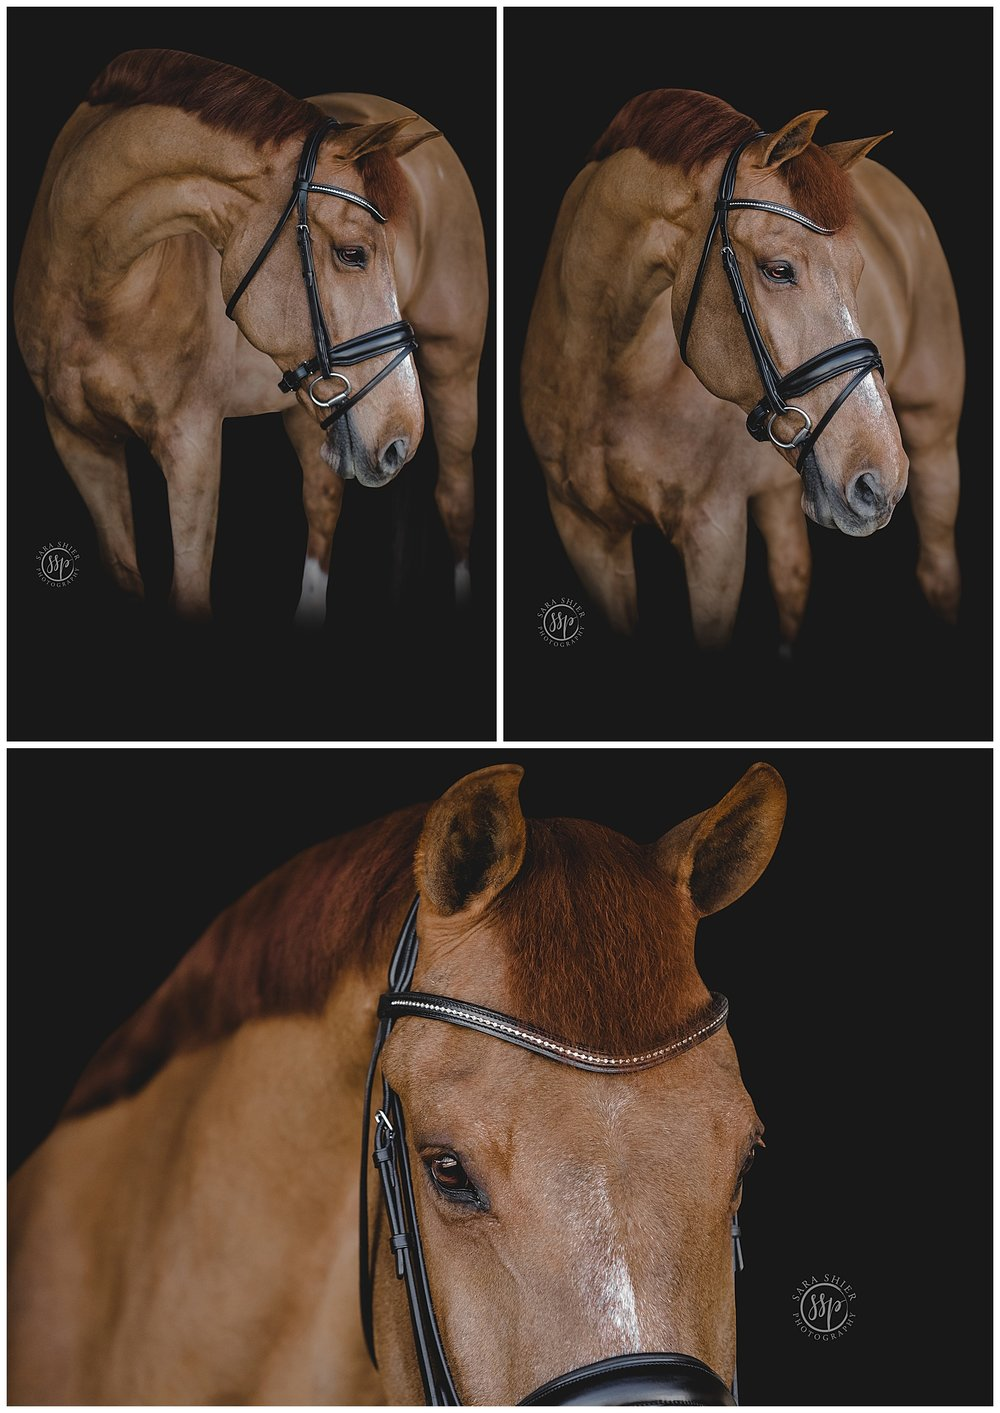 Black Background Horse Rider Equine Photographer Southern California Sara Shier Photography SoCal Equestrian Cowgirl_0439.jpg